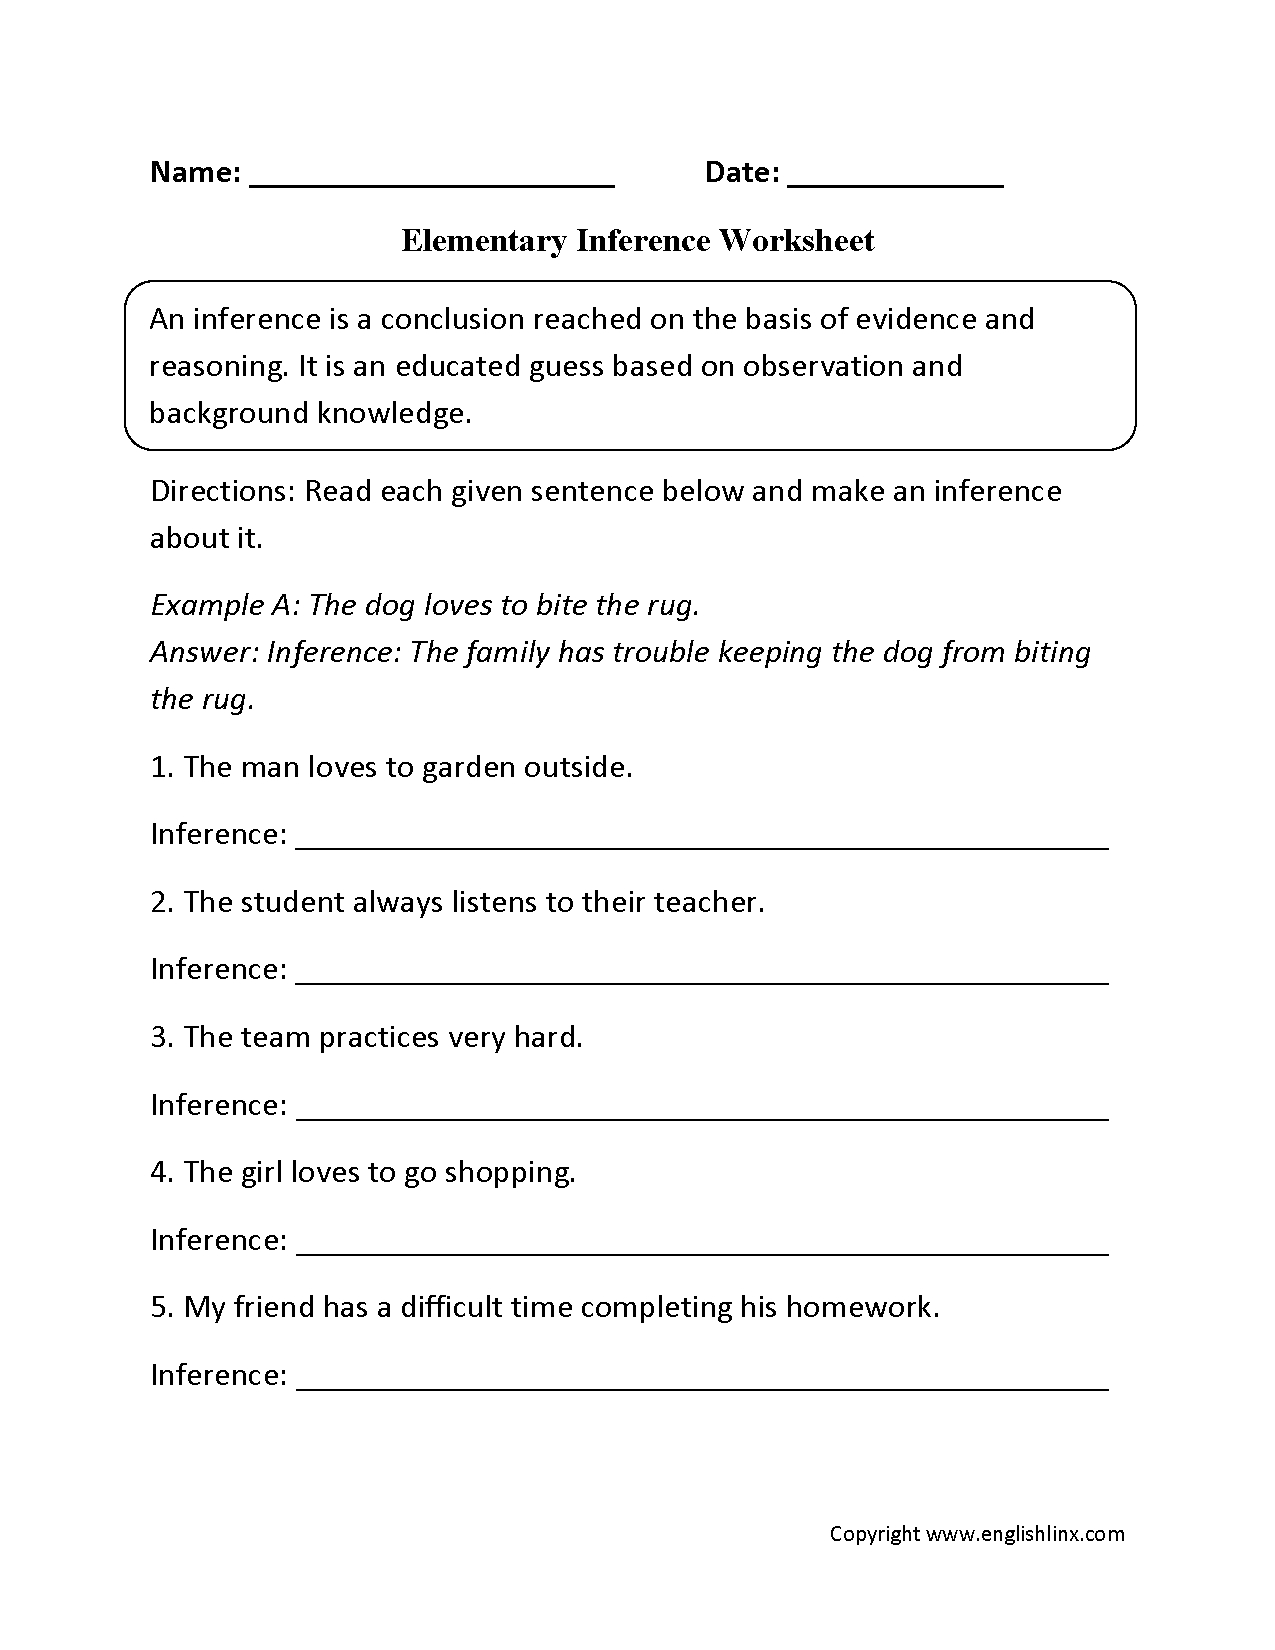 Reading Worksheets  Inference Worksheets Also Observation And Inference Worksheet Answer Key